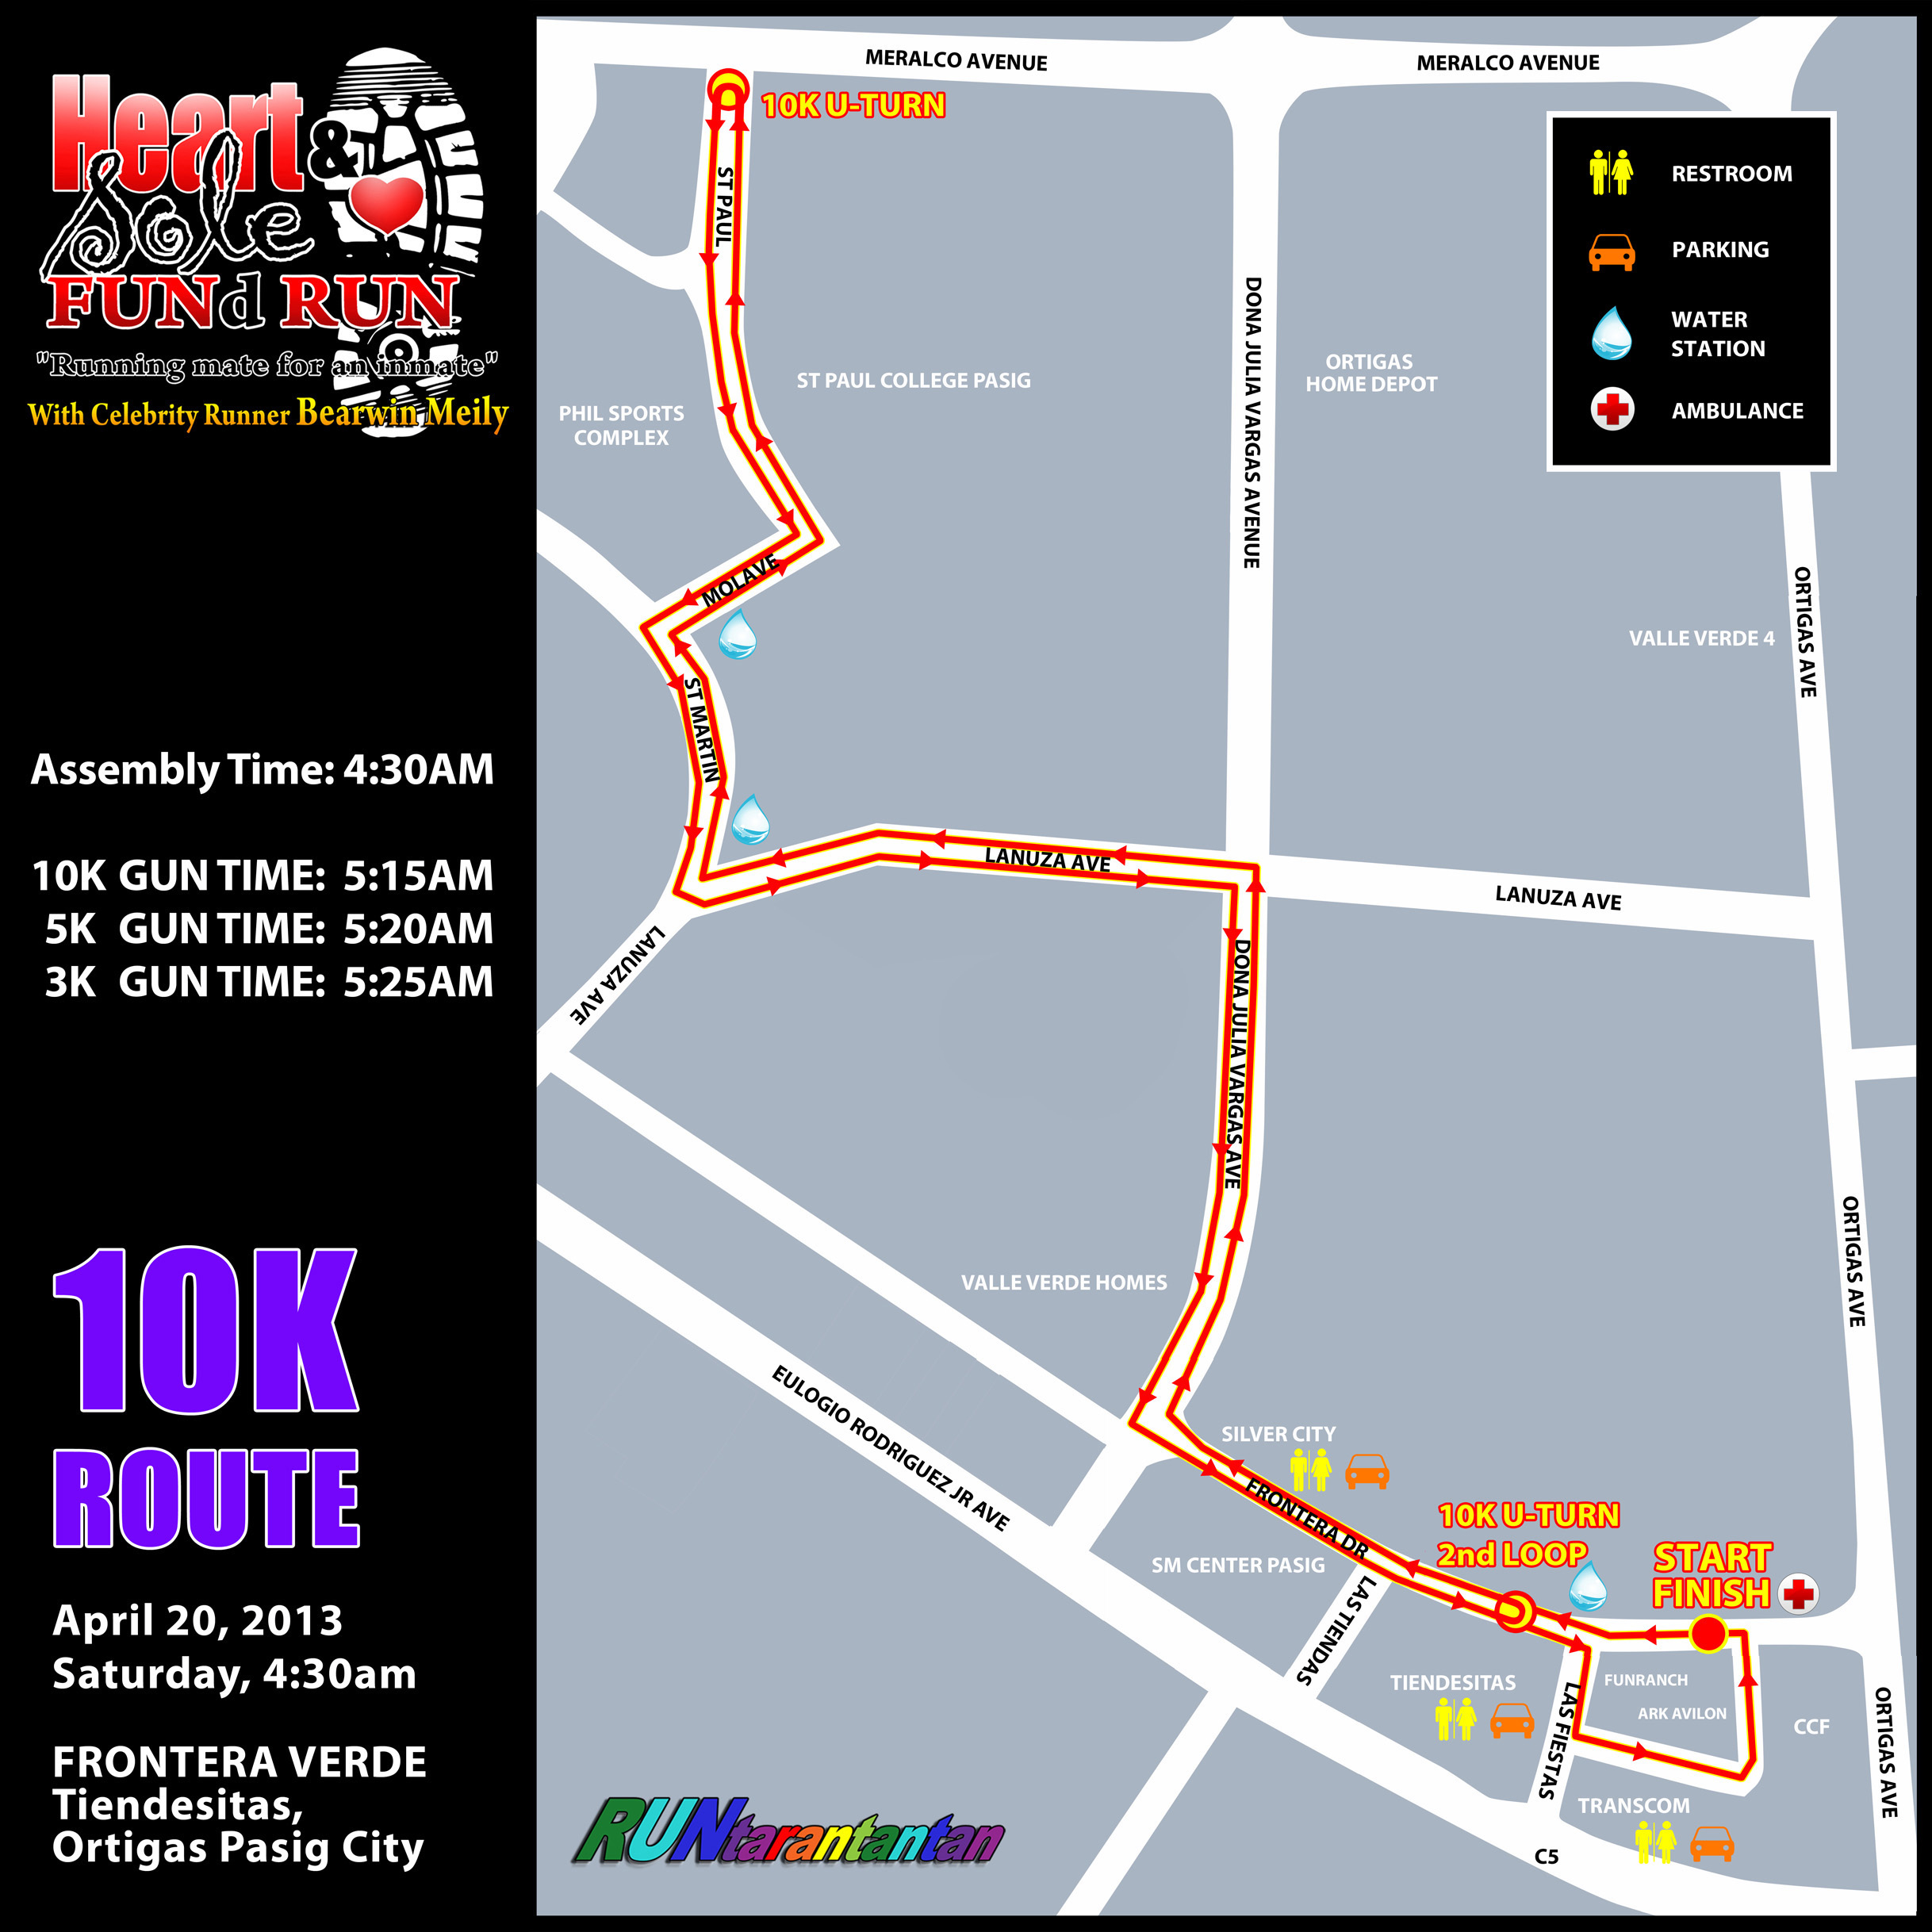 heart-and-sole-fund-run-2013-route-map-10k